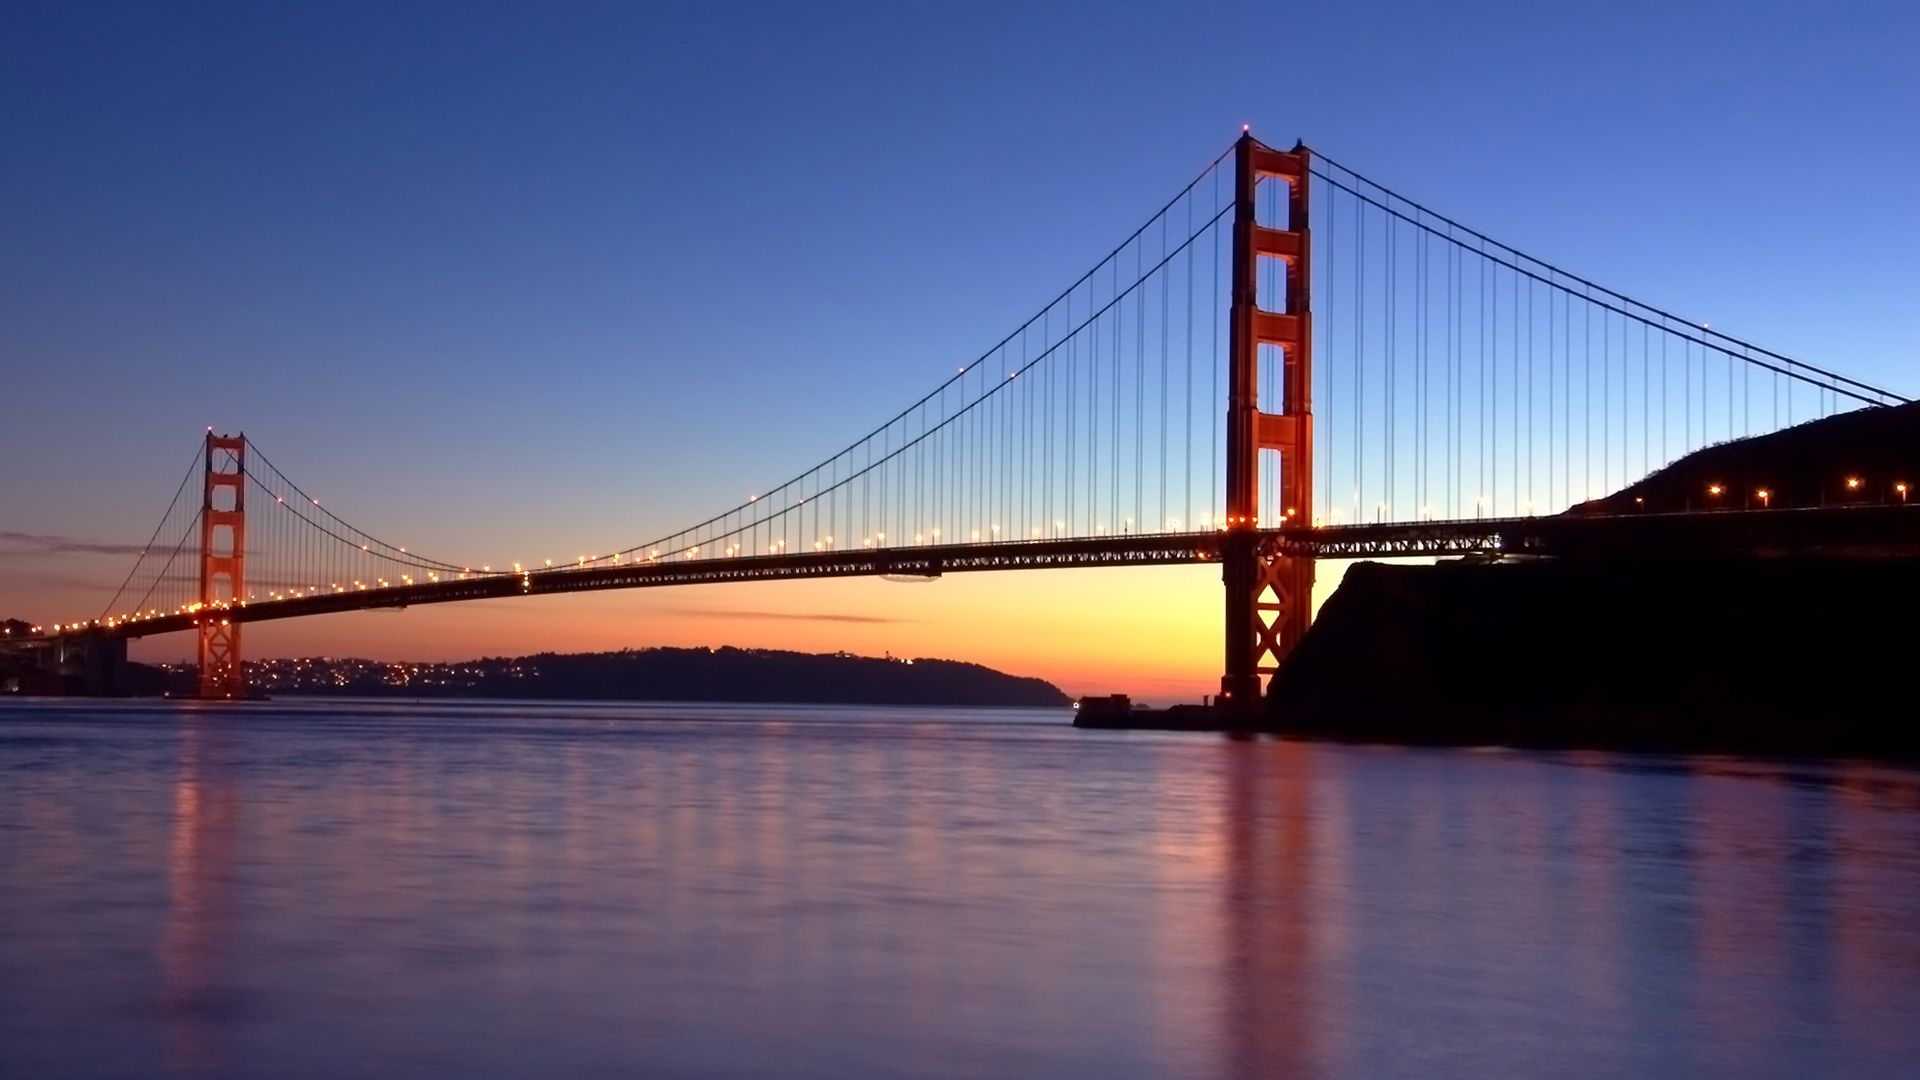 Interesting facts about the Golden Gate Bridge | Just Fun Facts